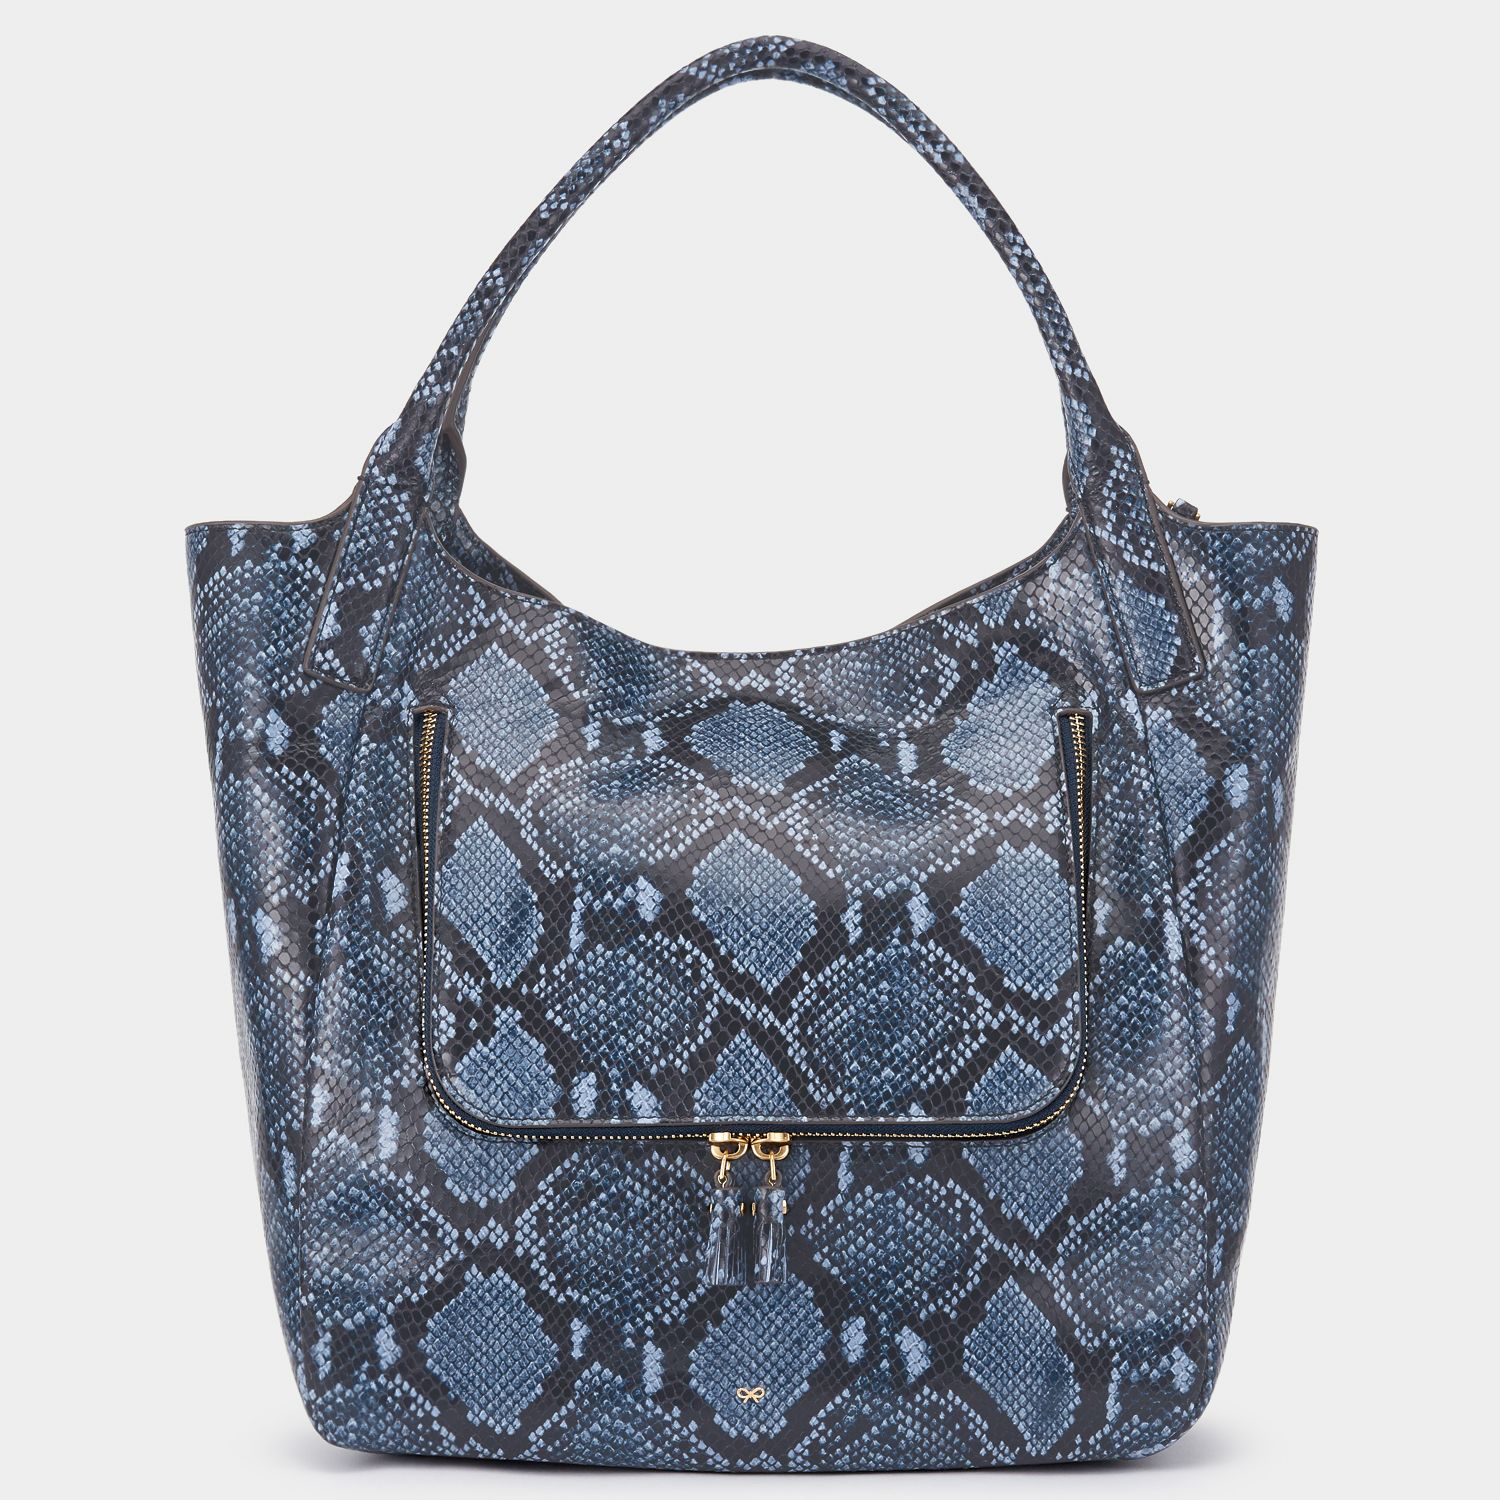 25b996a33ab3 Python Print Vere Shopper by Anya Hindmarch